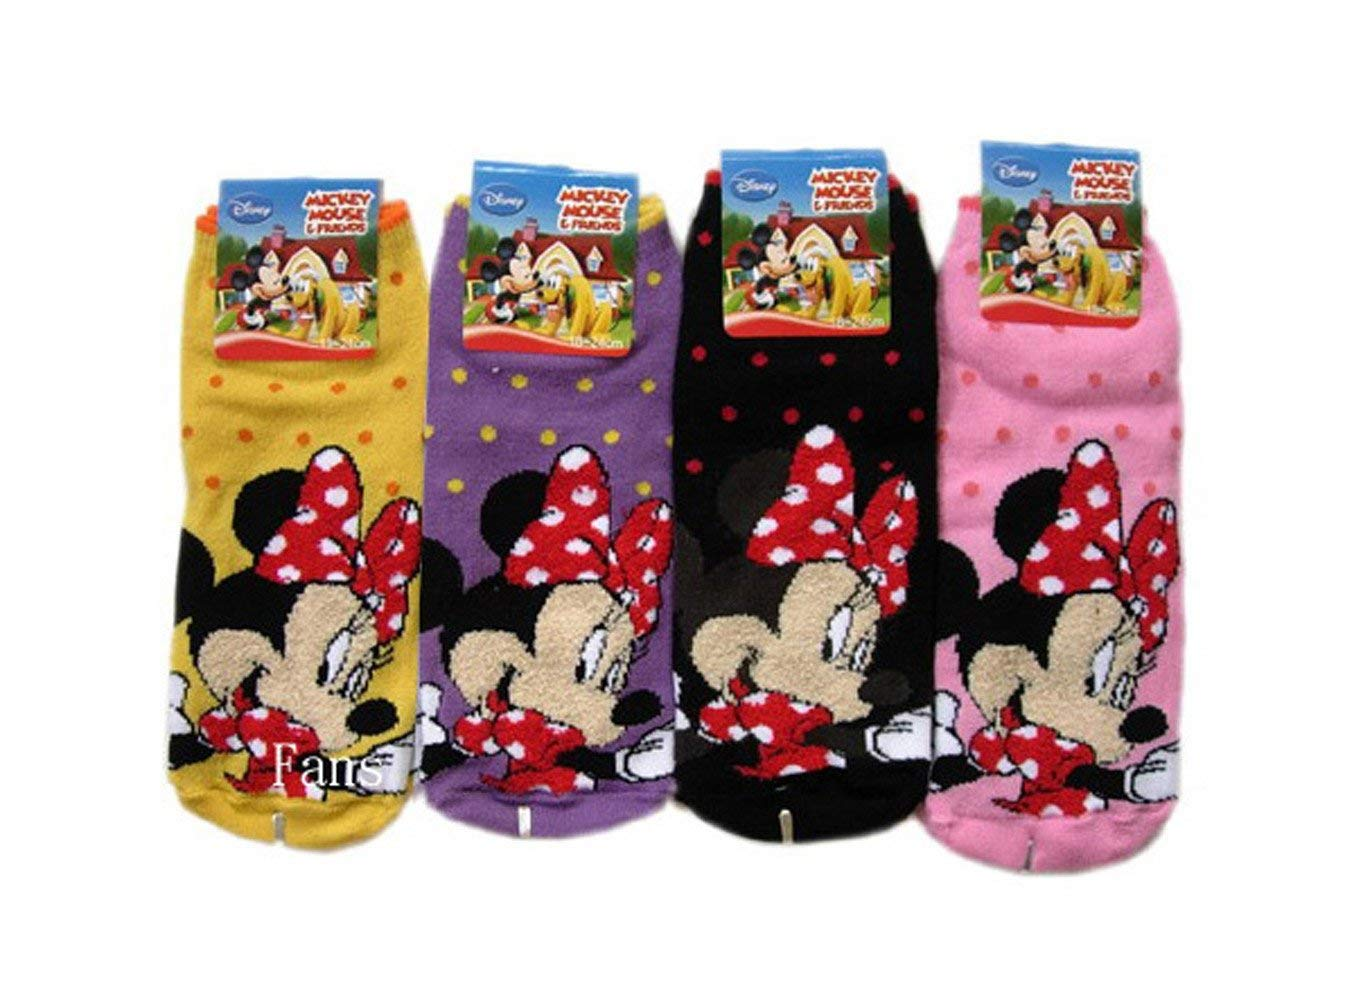 2cedc37eaa1 Get Quotations · 2 Piece Minnie Mouse Socks (Size 9-11) - Assorted Childrens  Socks